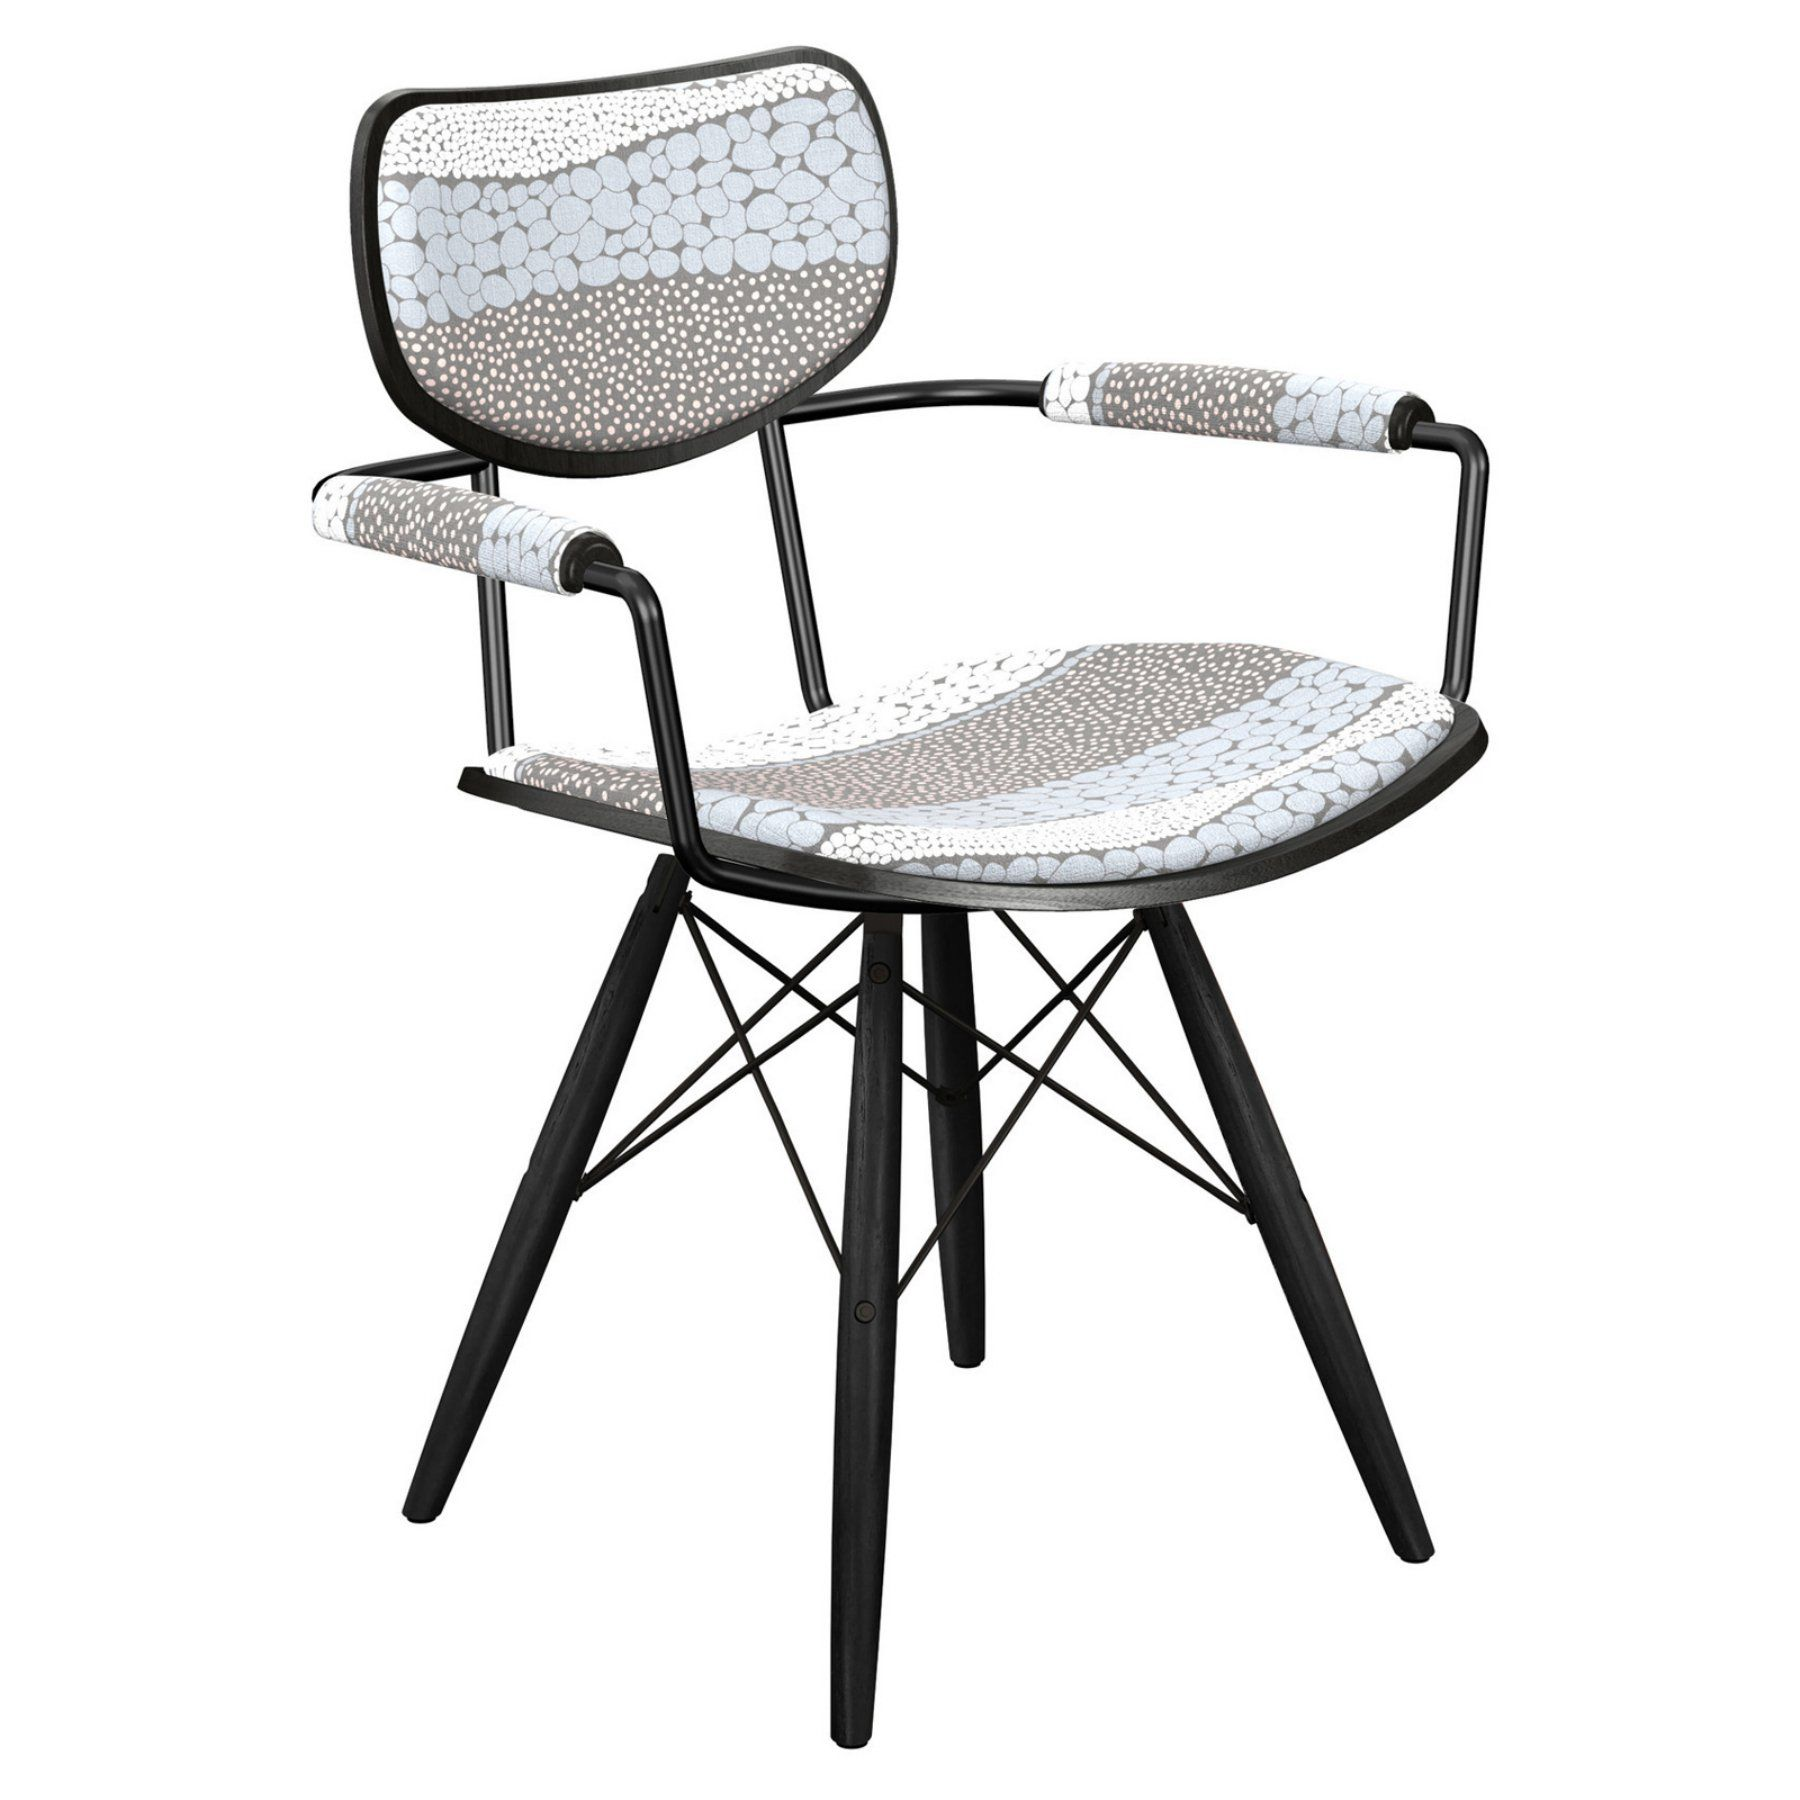 Nyekoncept Harvey Cloudy Trails Dowel Arm Chair  16007902